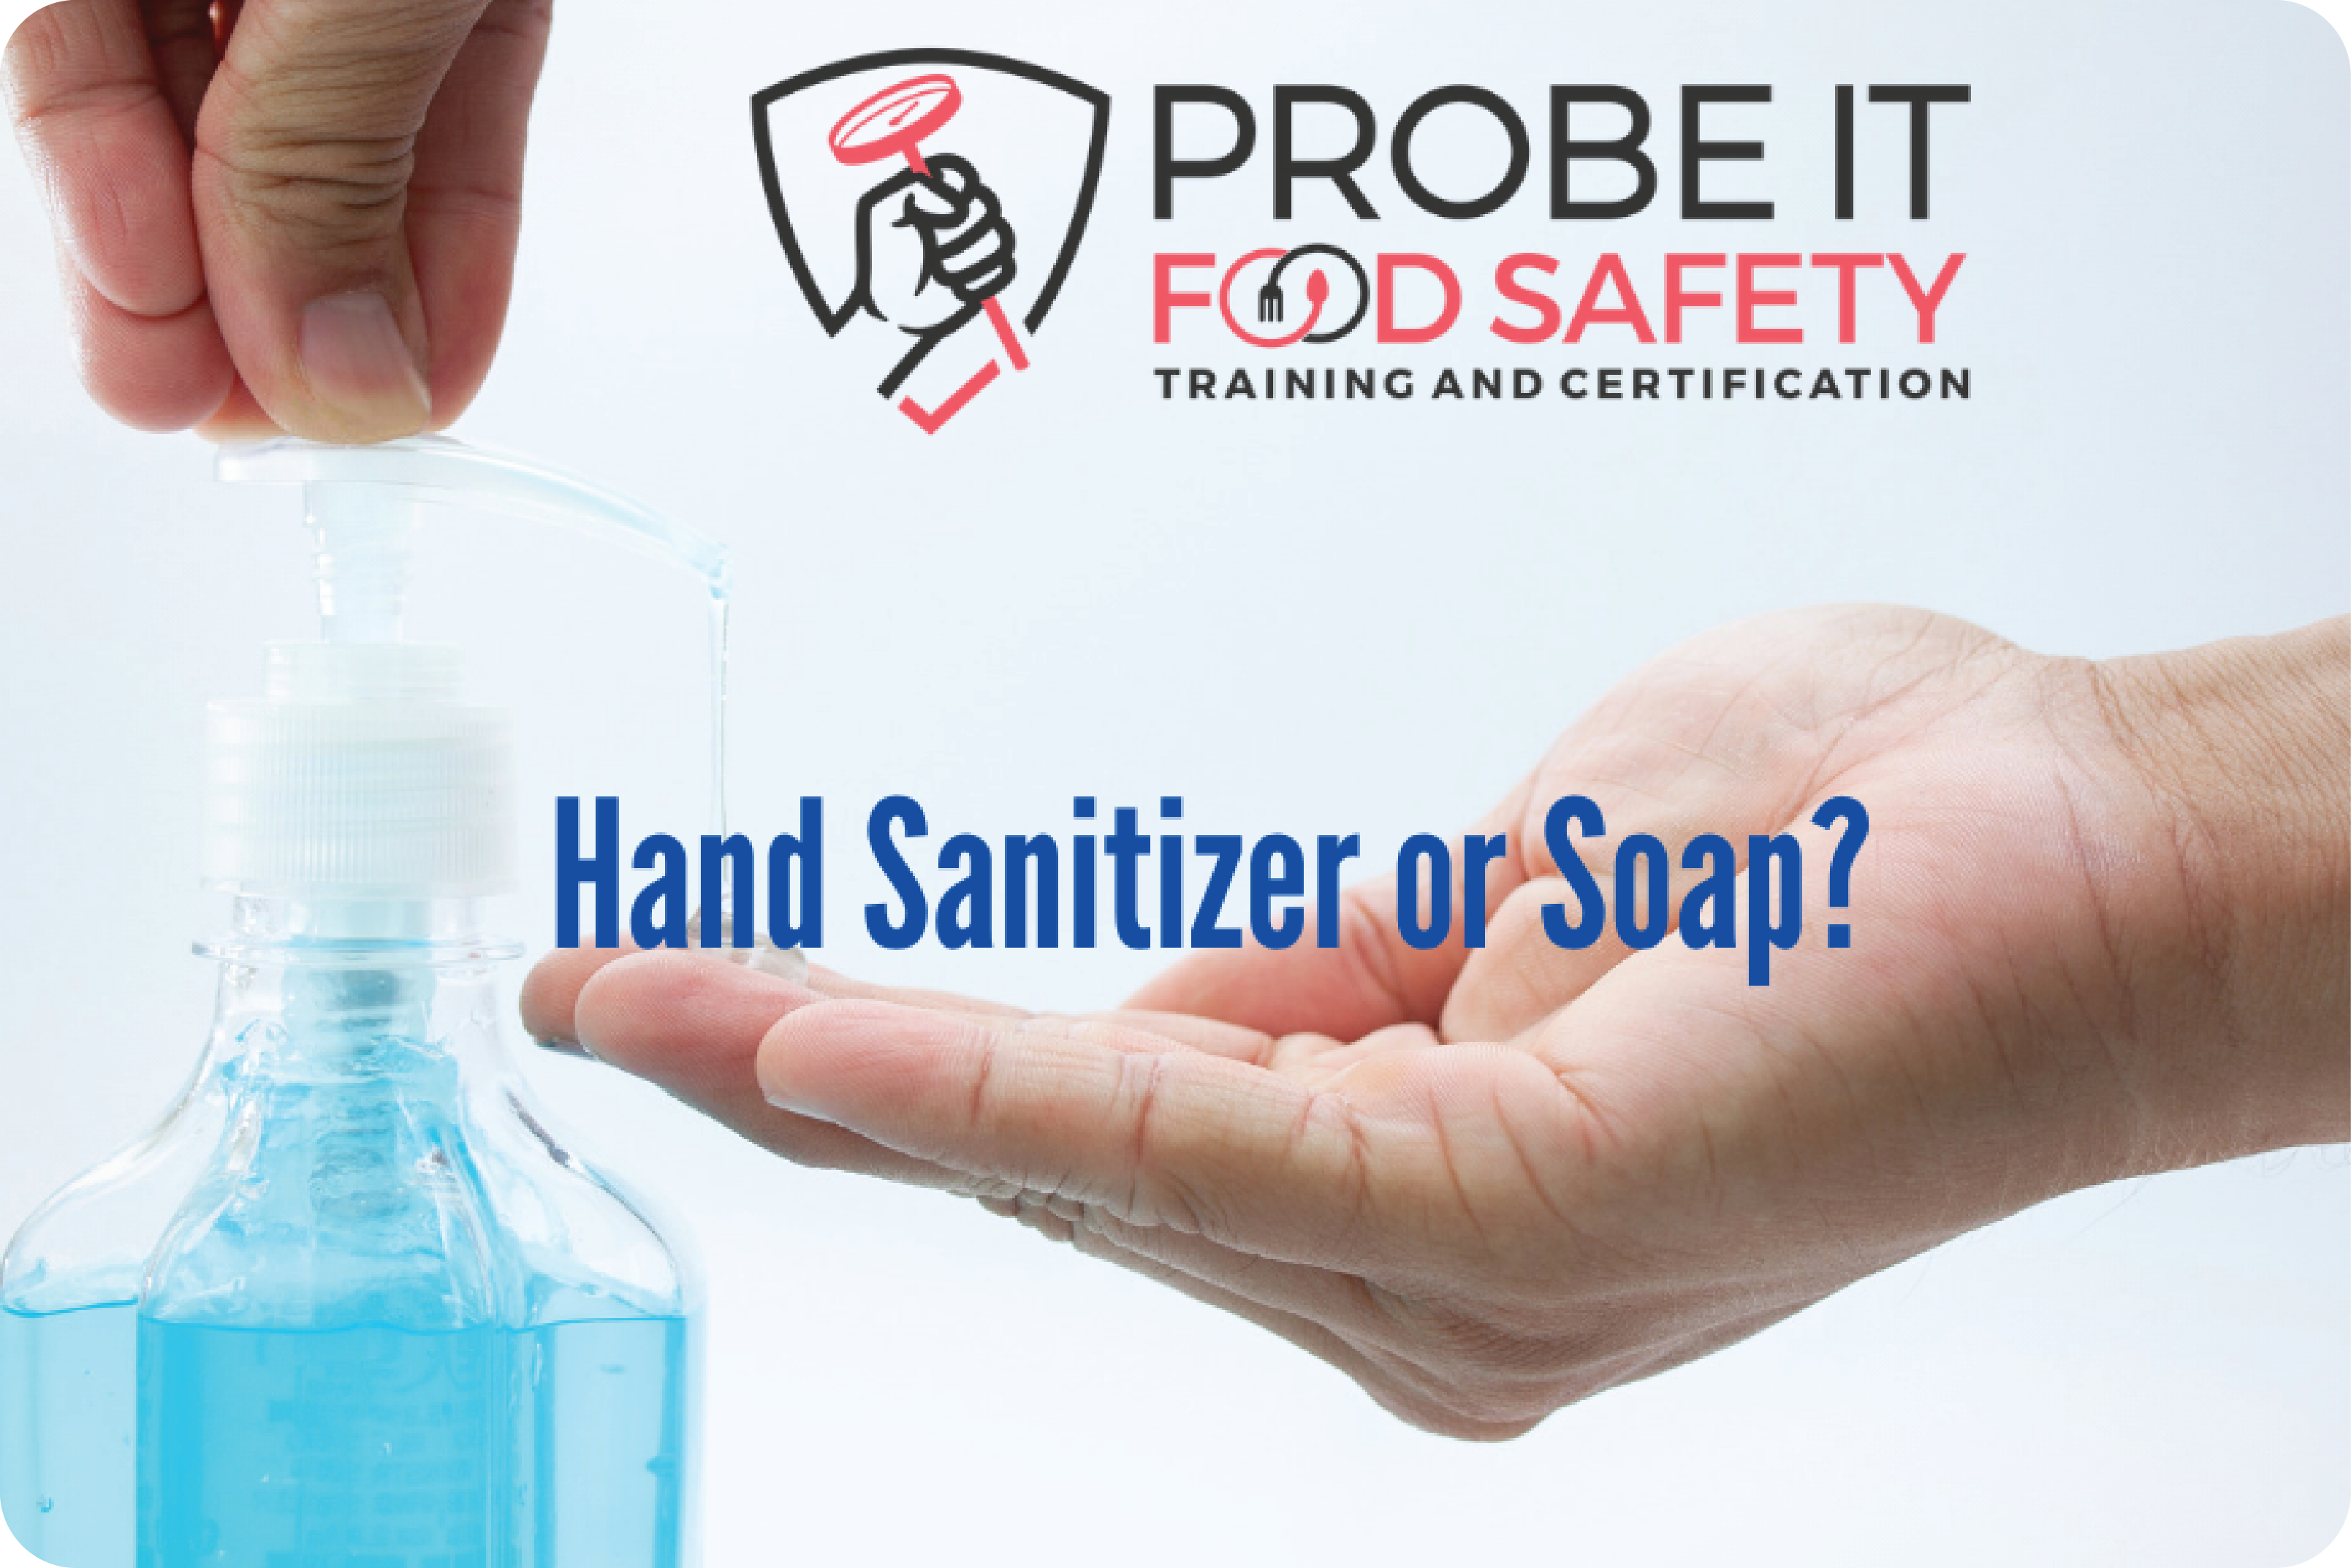 Hand Sanitizer or Soap?